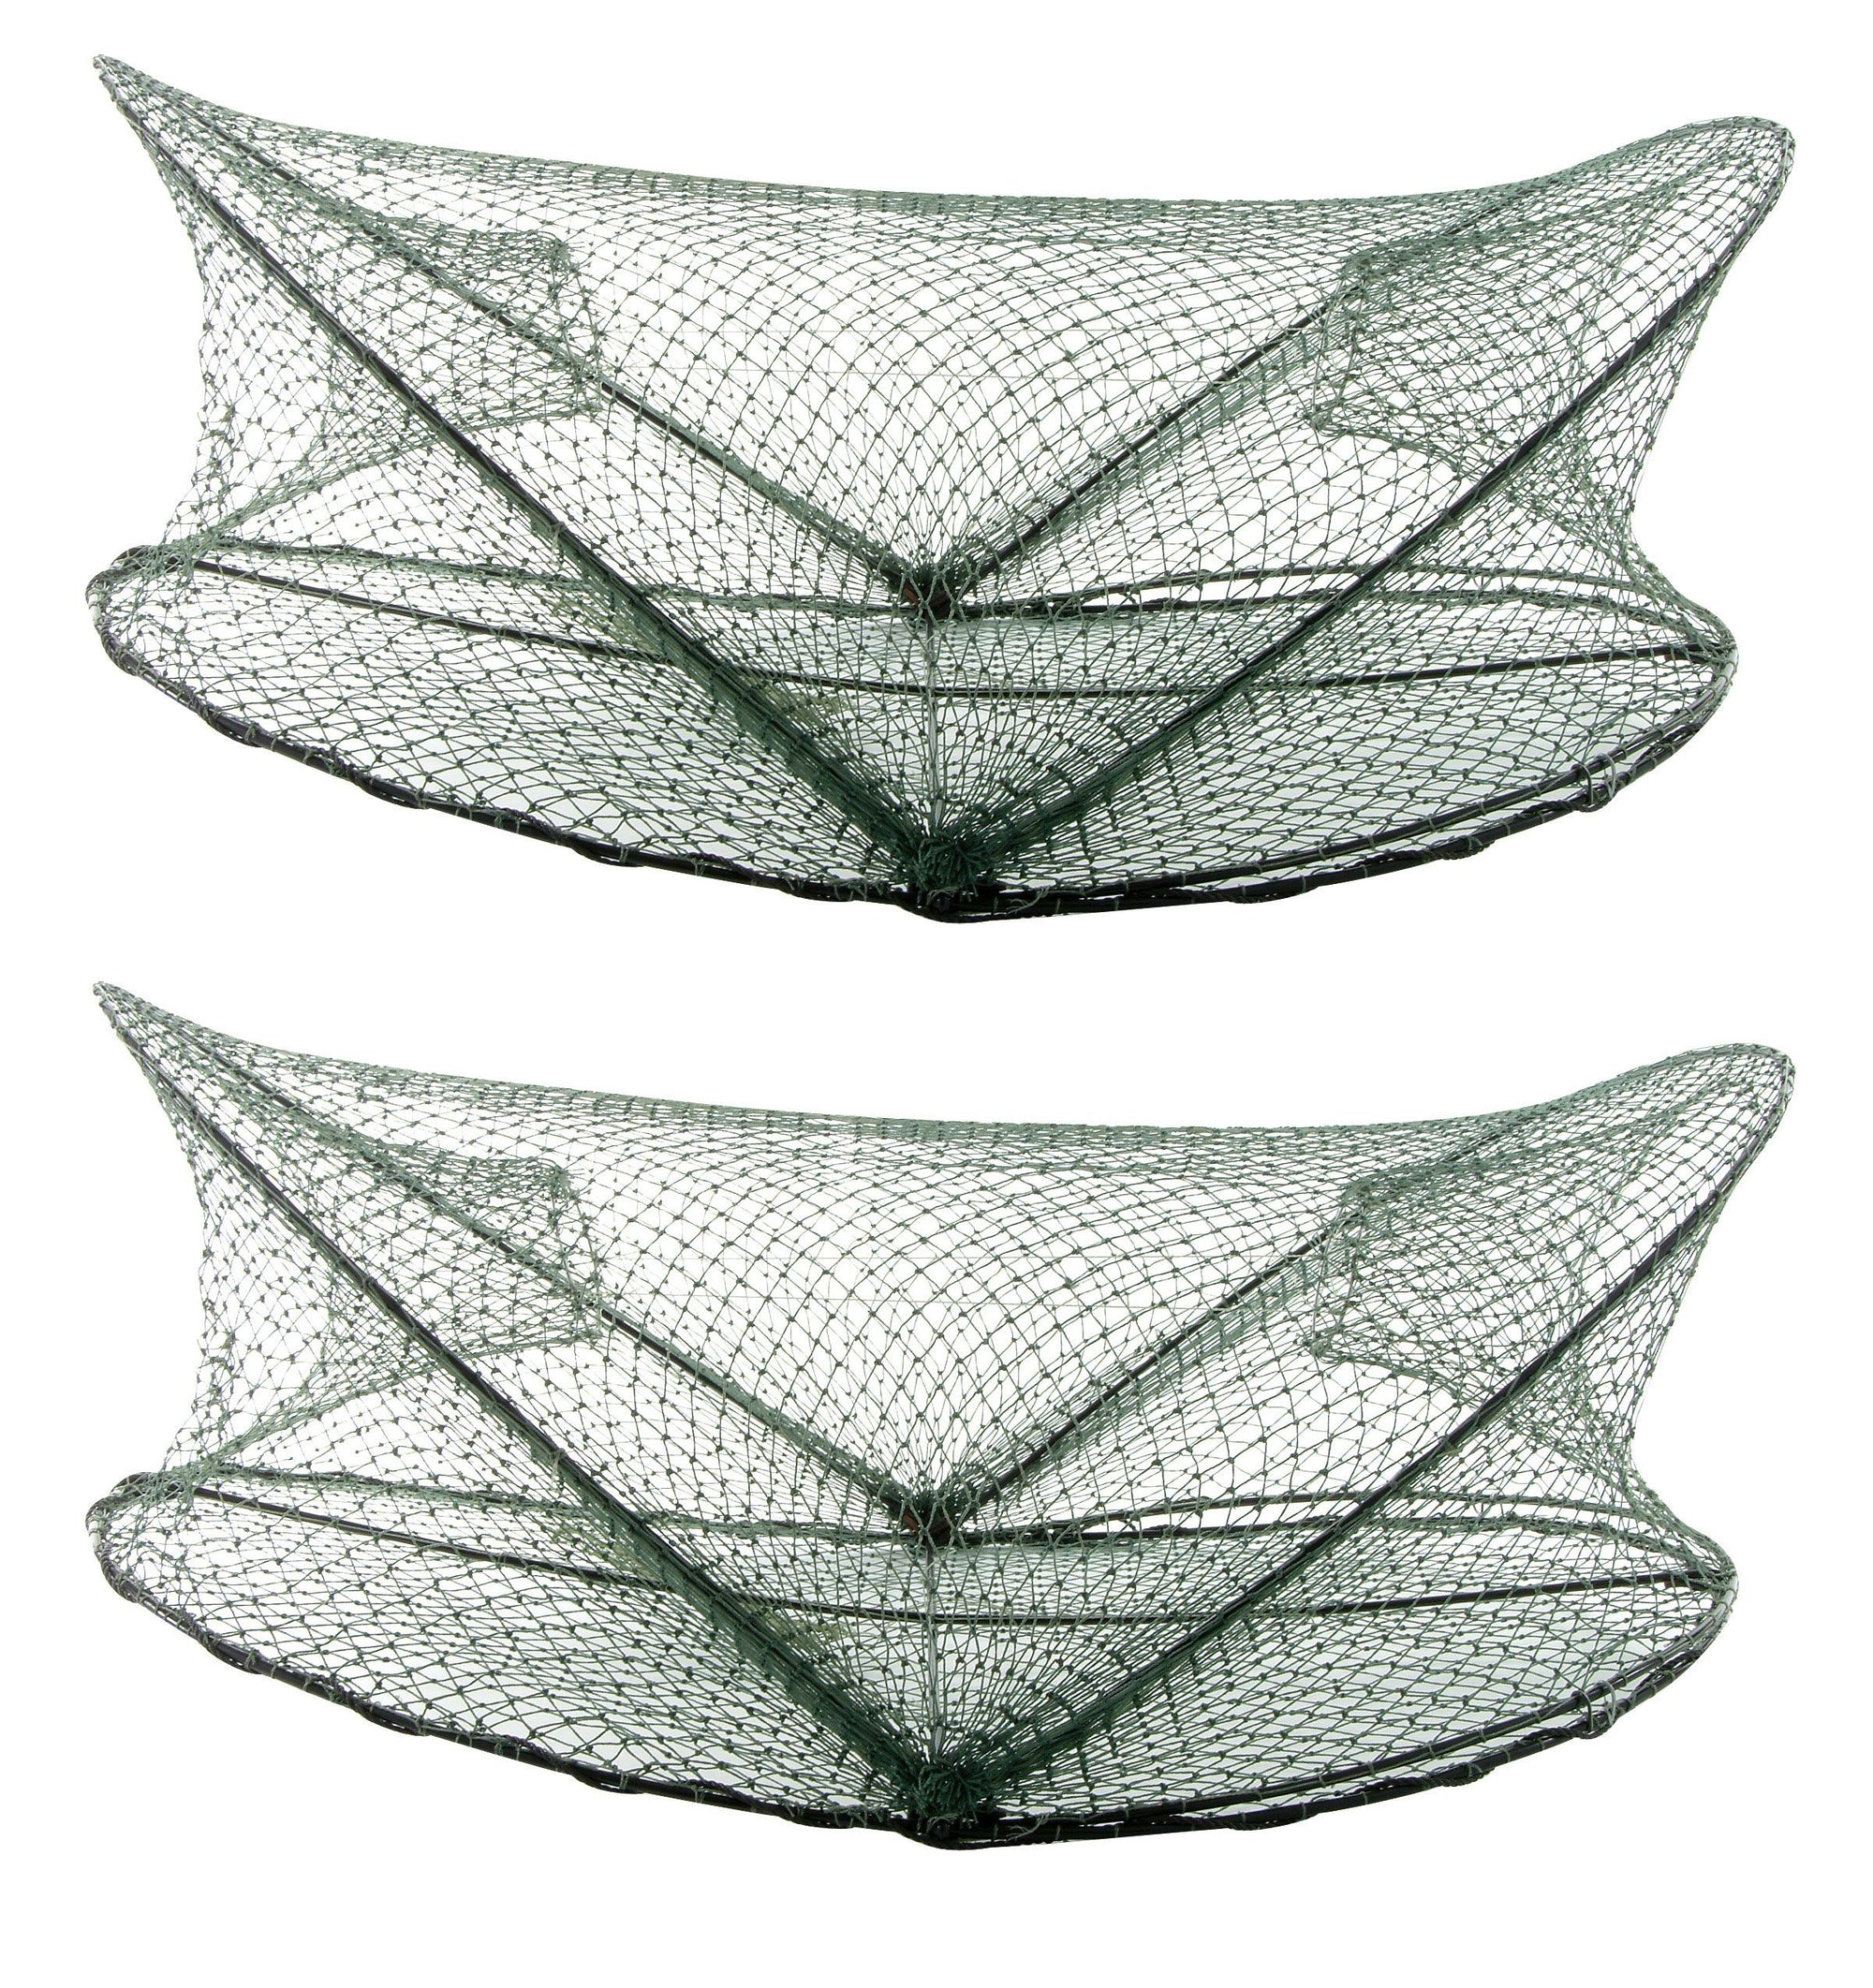 Net Factory Opera House Yabby Crayfish Trap Pot - 2 Pack